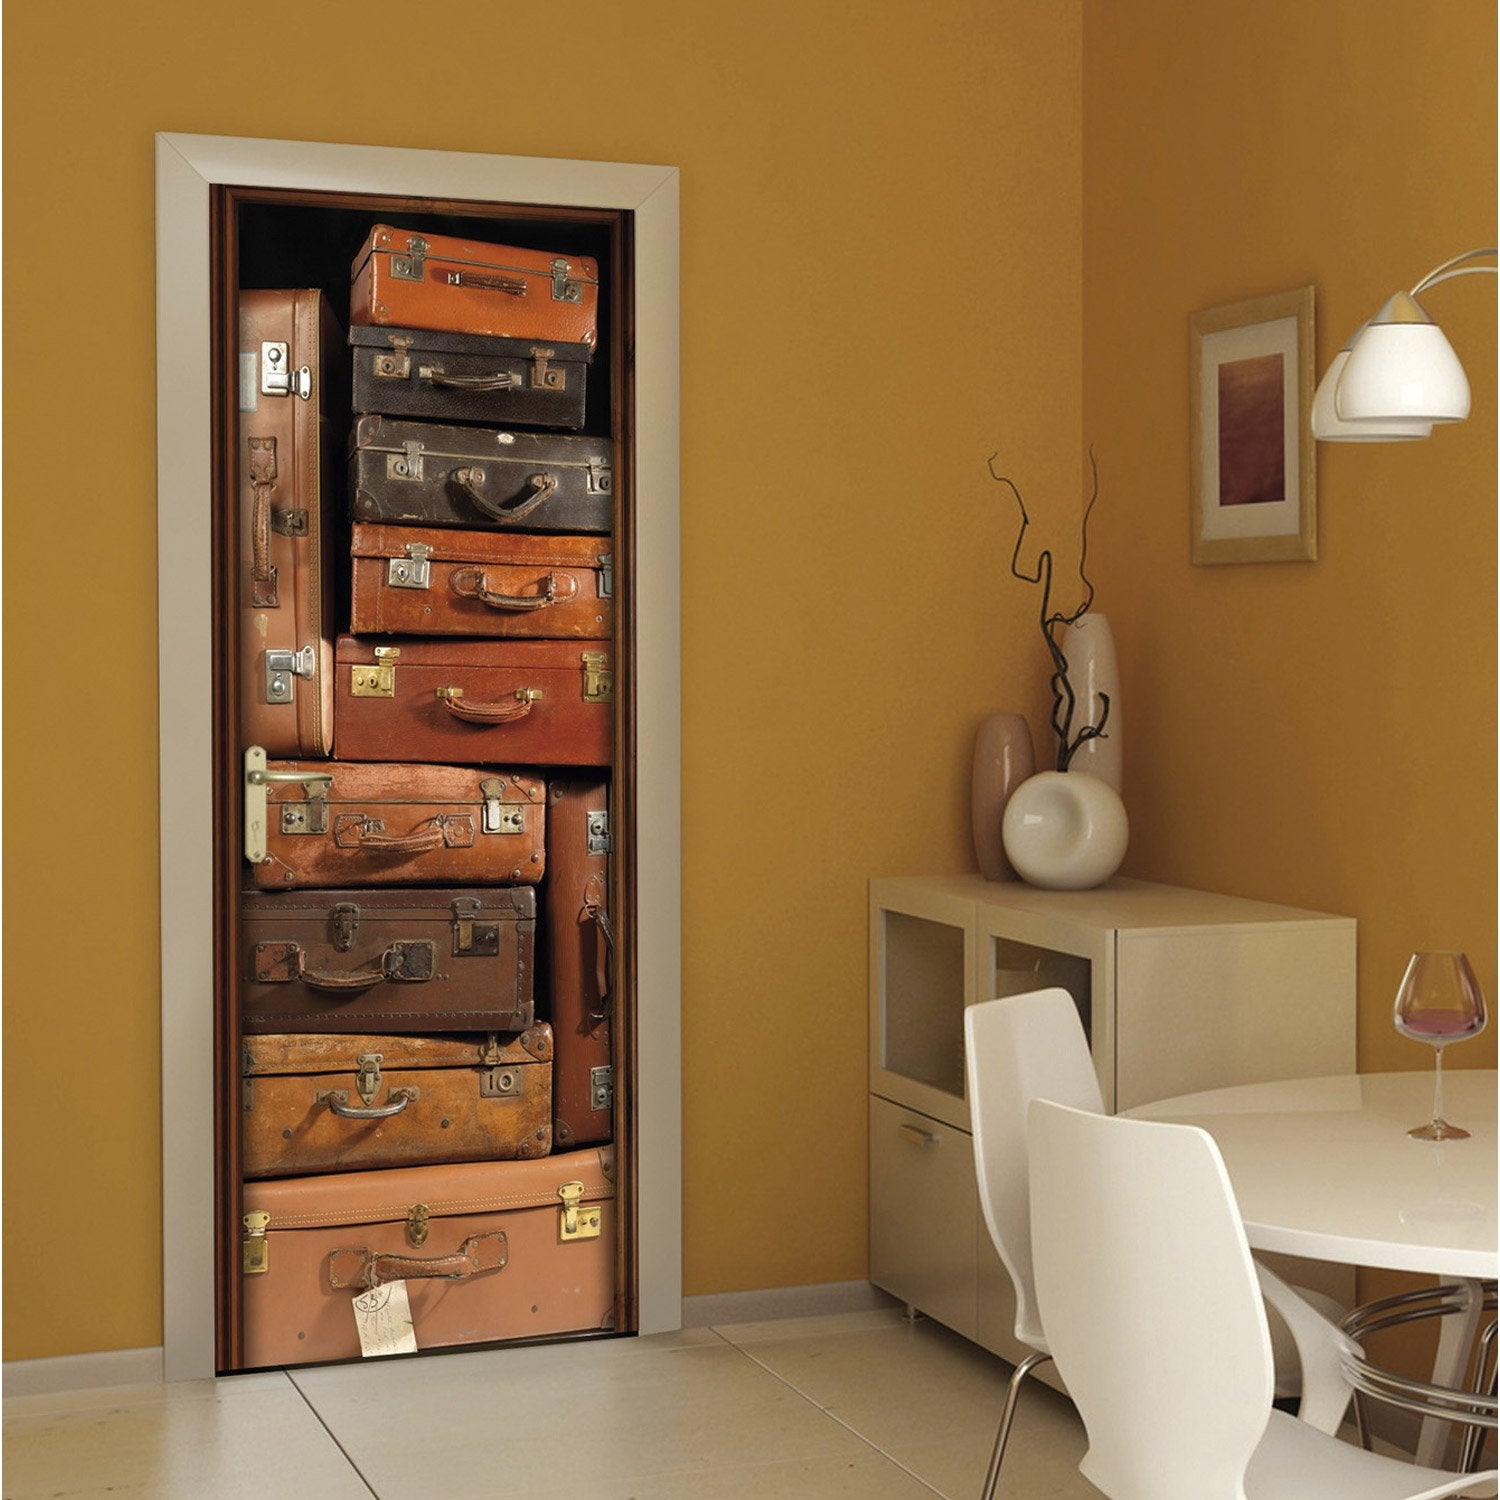 sticker porte ondoor valises 83 cm x 204 cm leroy merlin. Black Bedroom Furniture Sets. Home Design Ideas